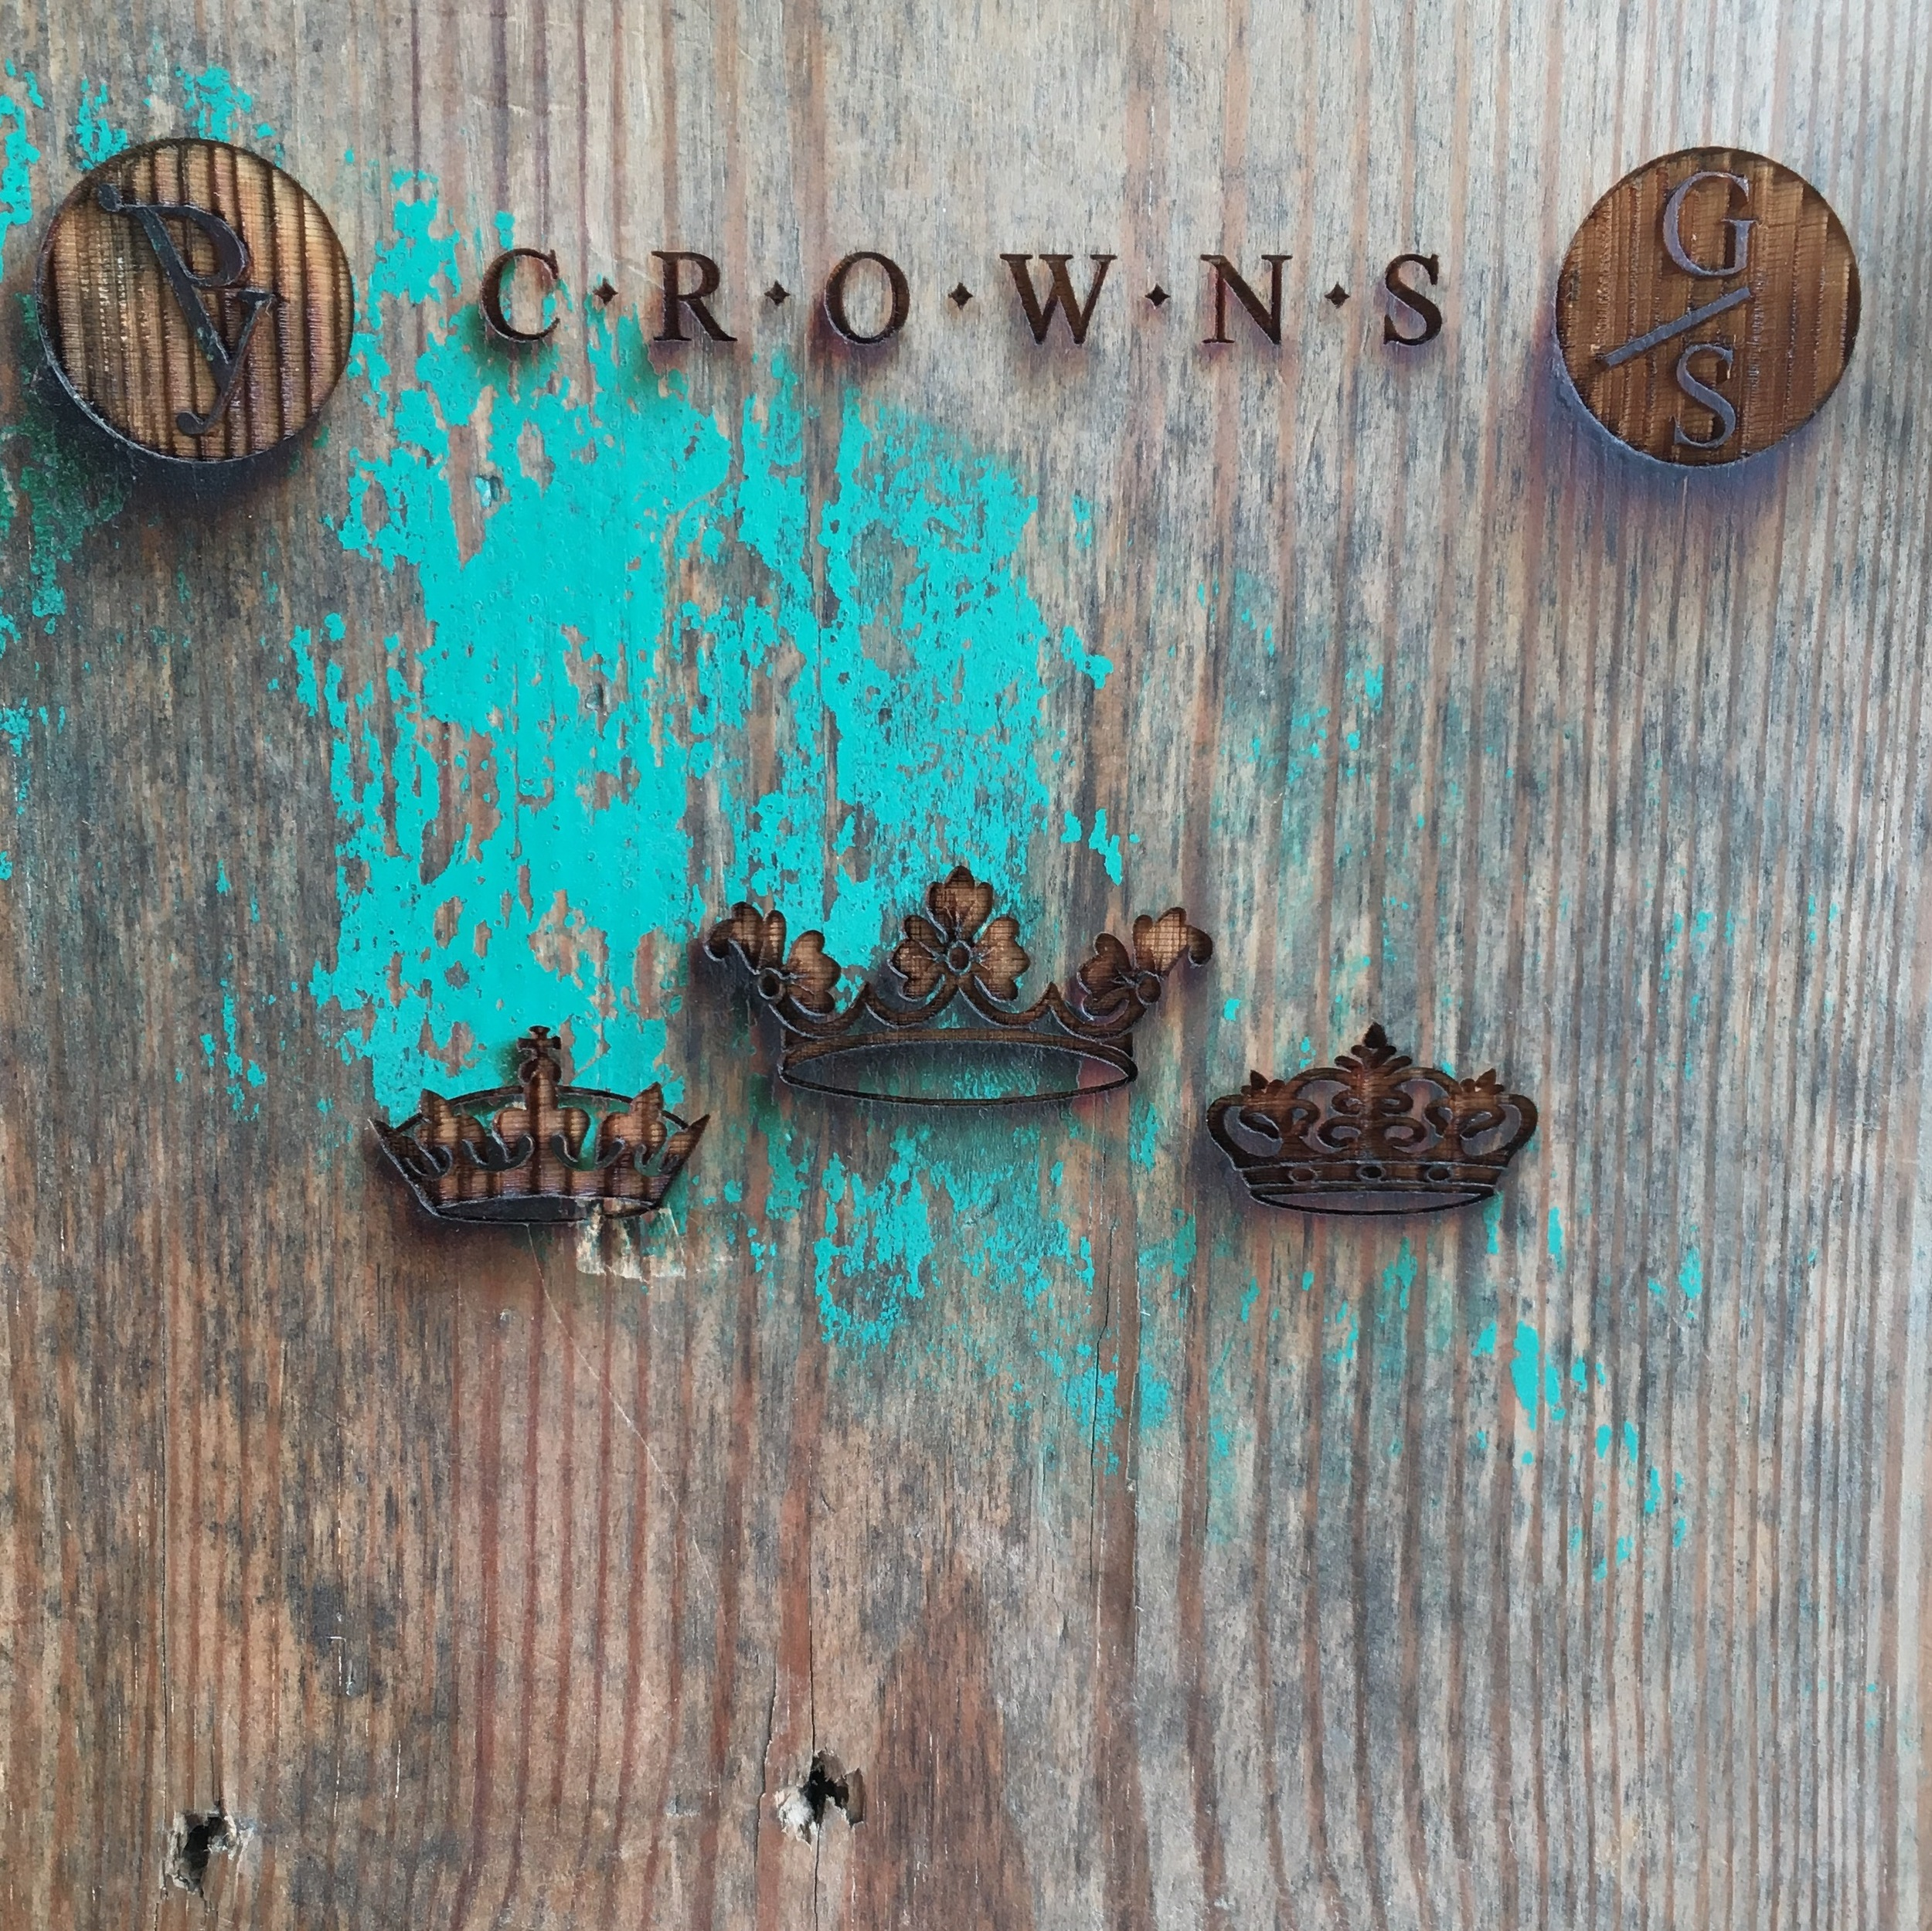 PY & GREENWOOD SHARPS - CROWNS